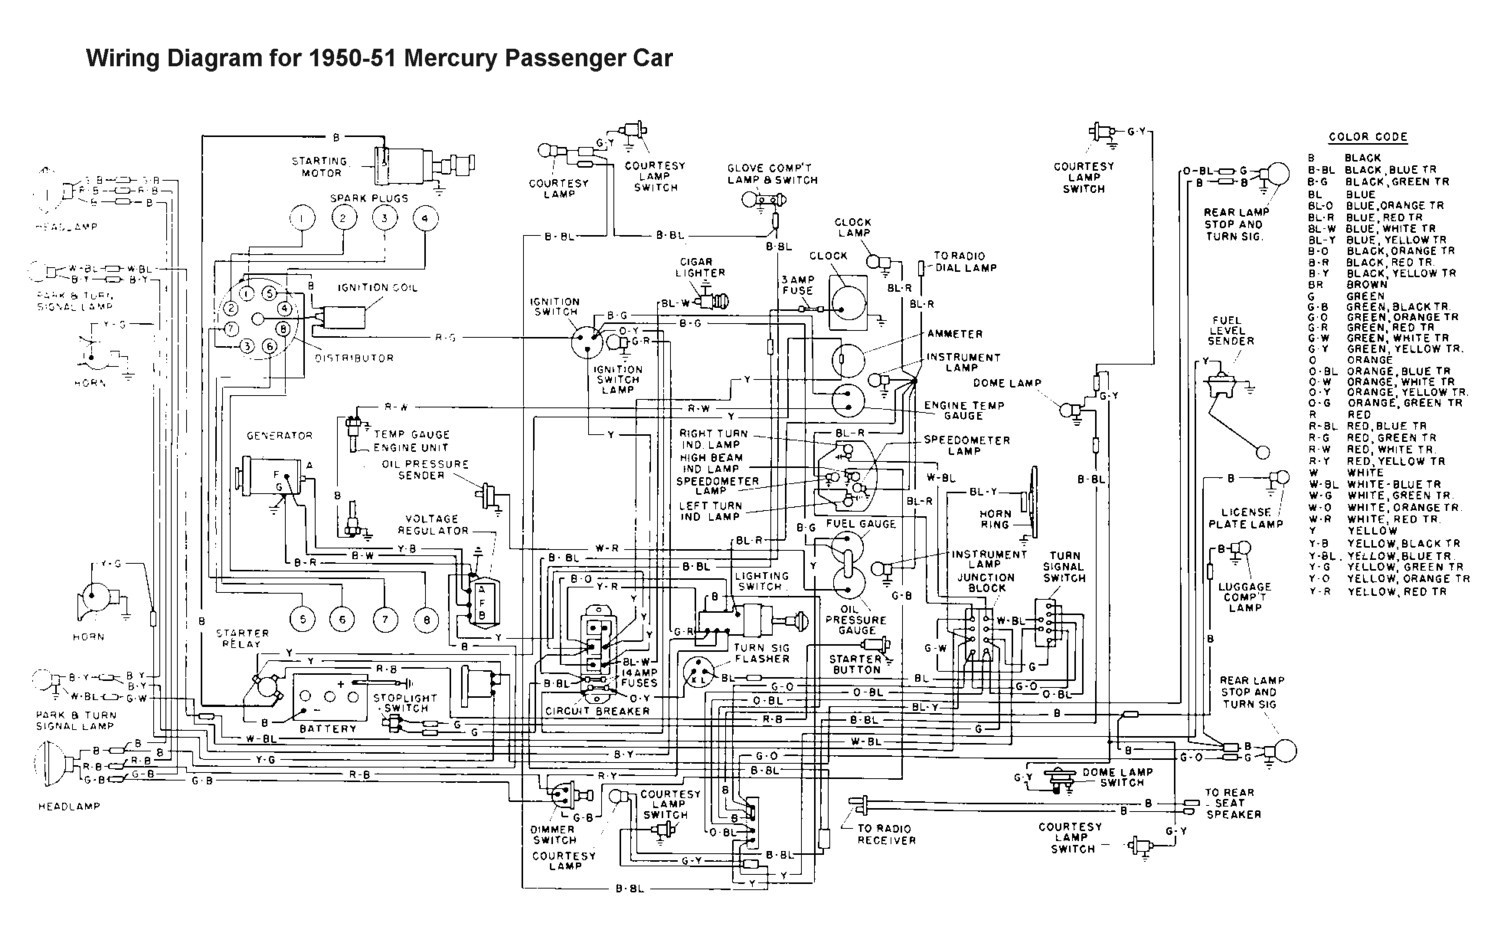 1950 Desoto Wiring Diagram Schematic - Circuit Diagram Symbols •